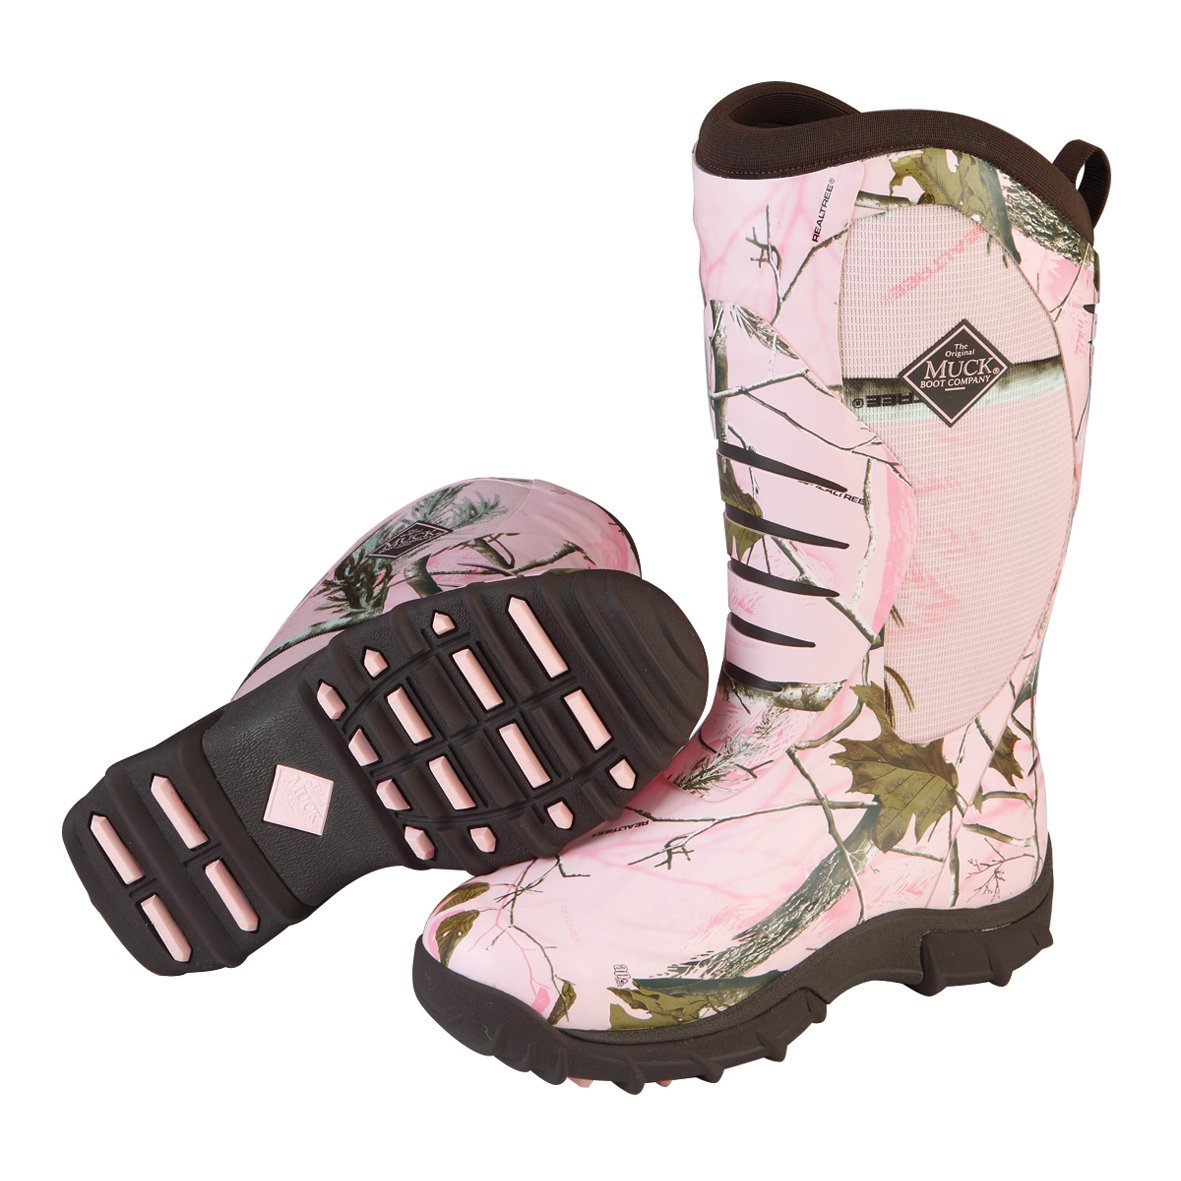 Muck Boot Women's Pursuit Stealth Hunting Boot WPS,Pink Realtree APC,US 7 M by Muck Boot